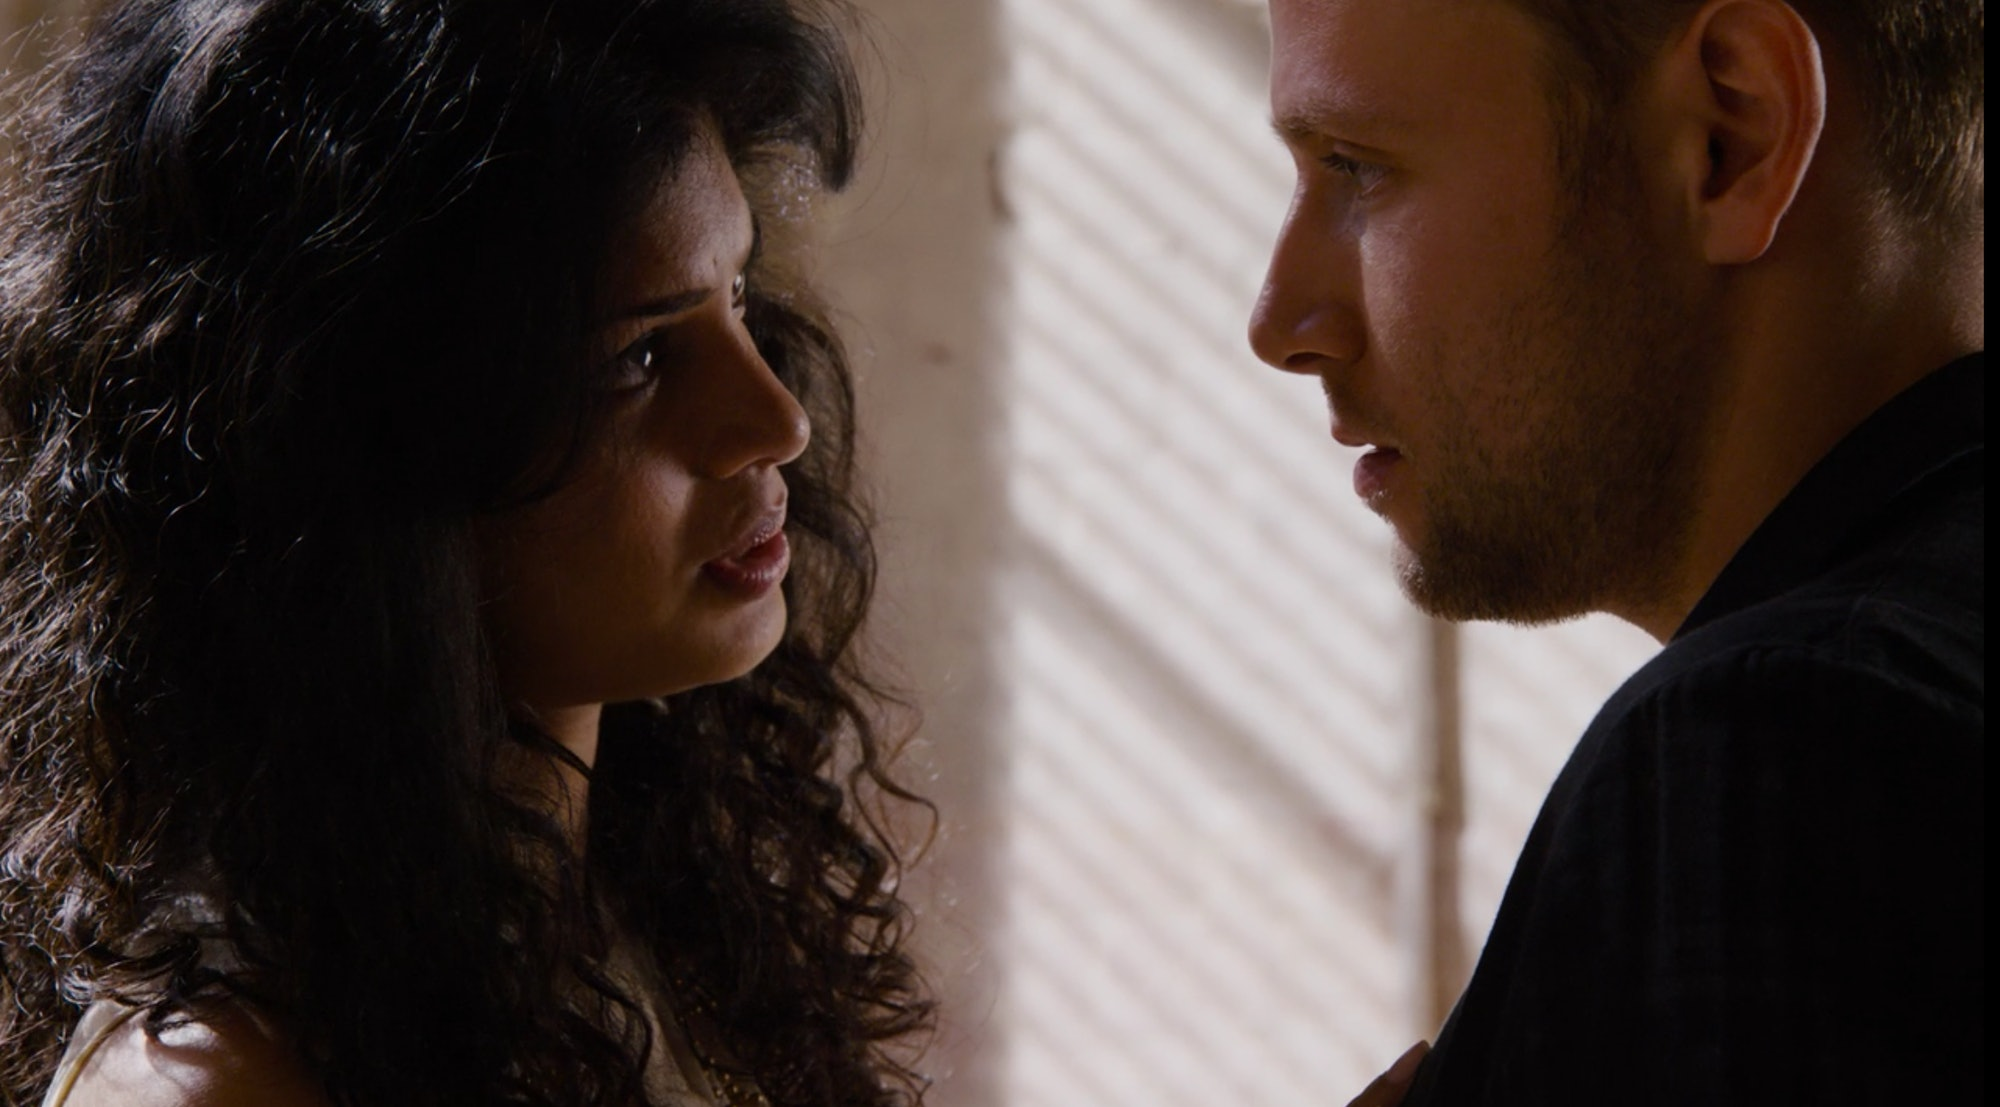 Tina Desai as Kala and Max Riemelt as Wolfgang in 'Sense8' Season 2